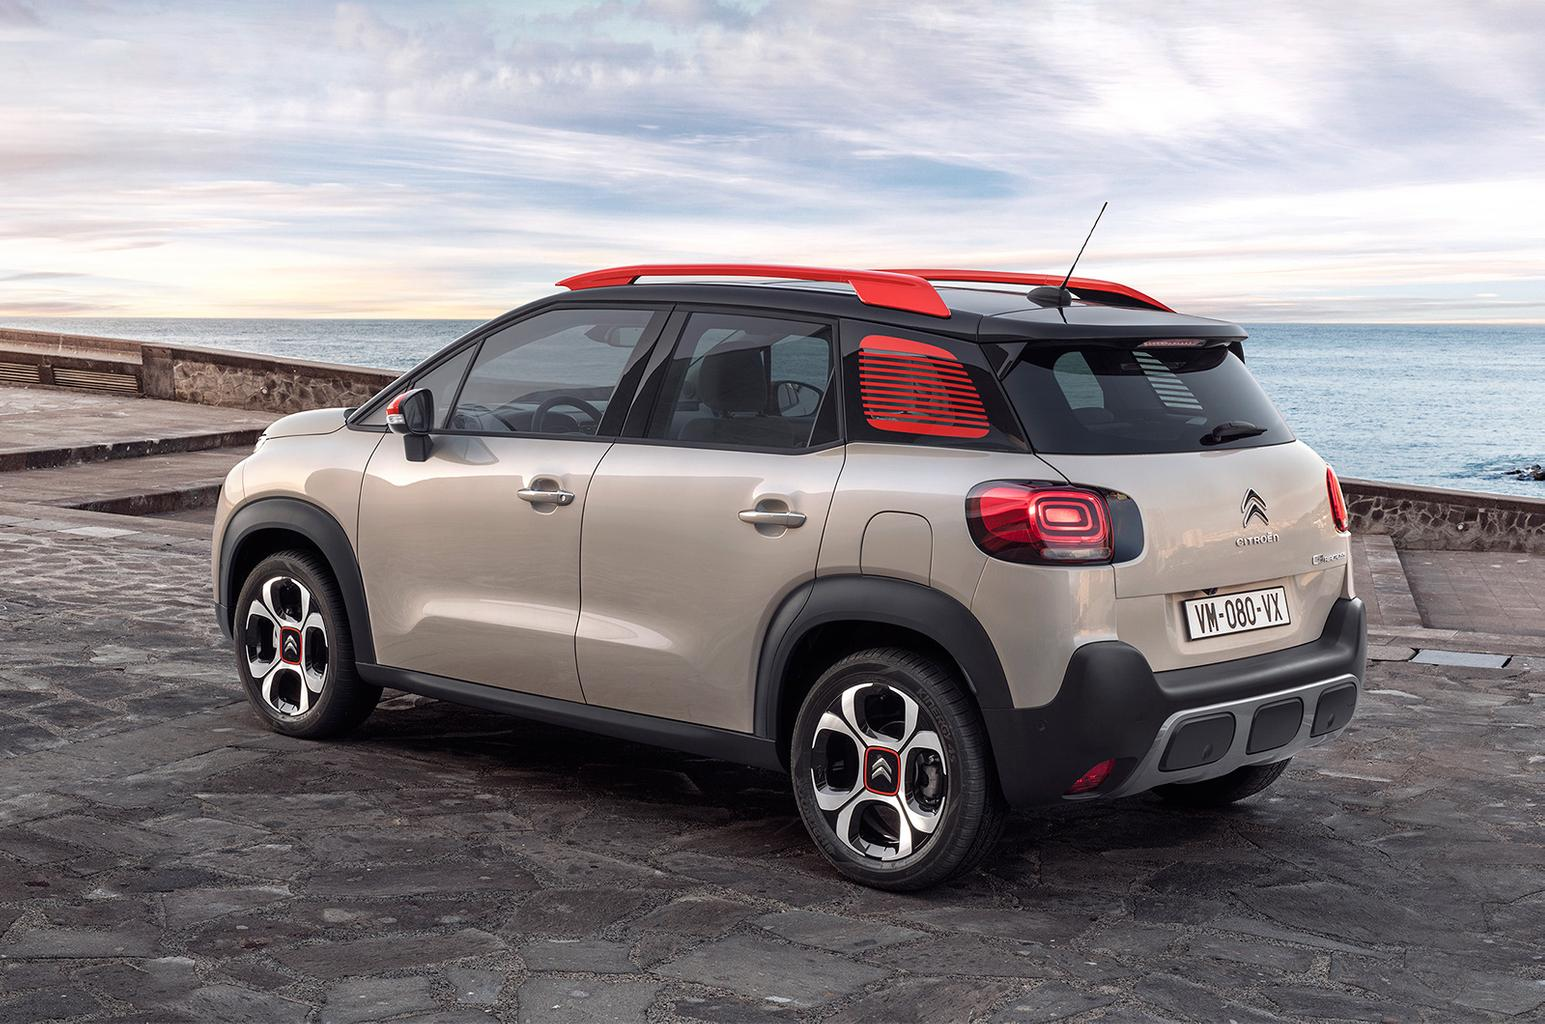 New Citroen C3 Aircross to go on sale in early 2018